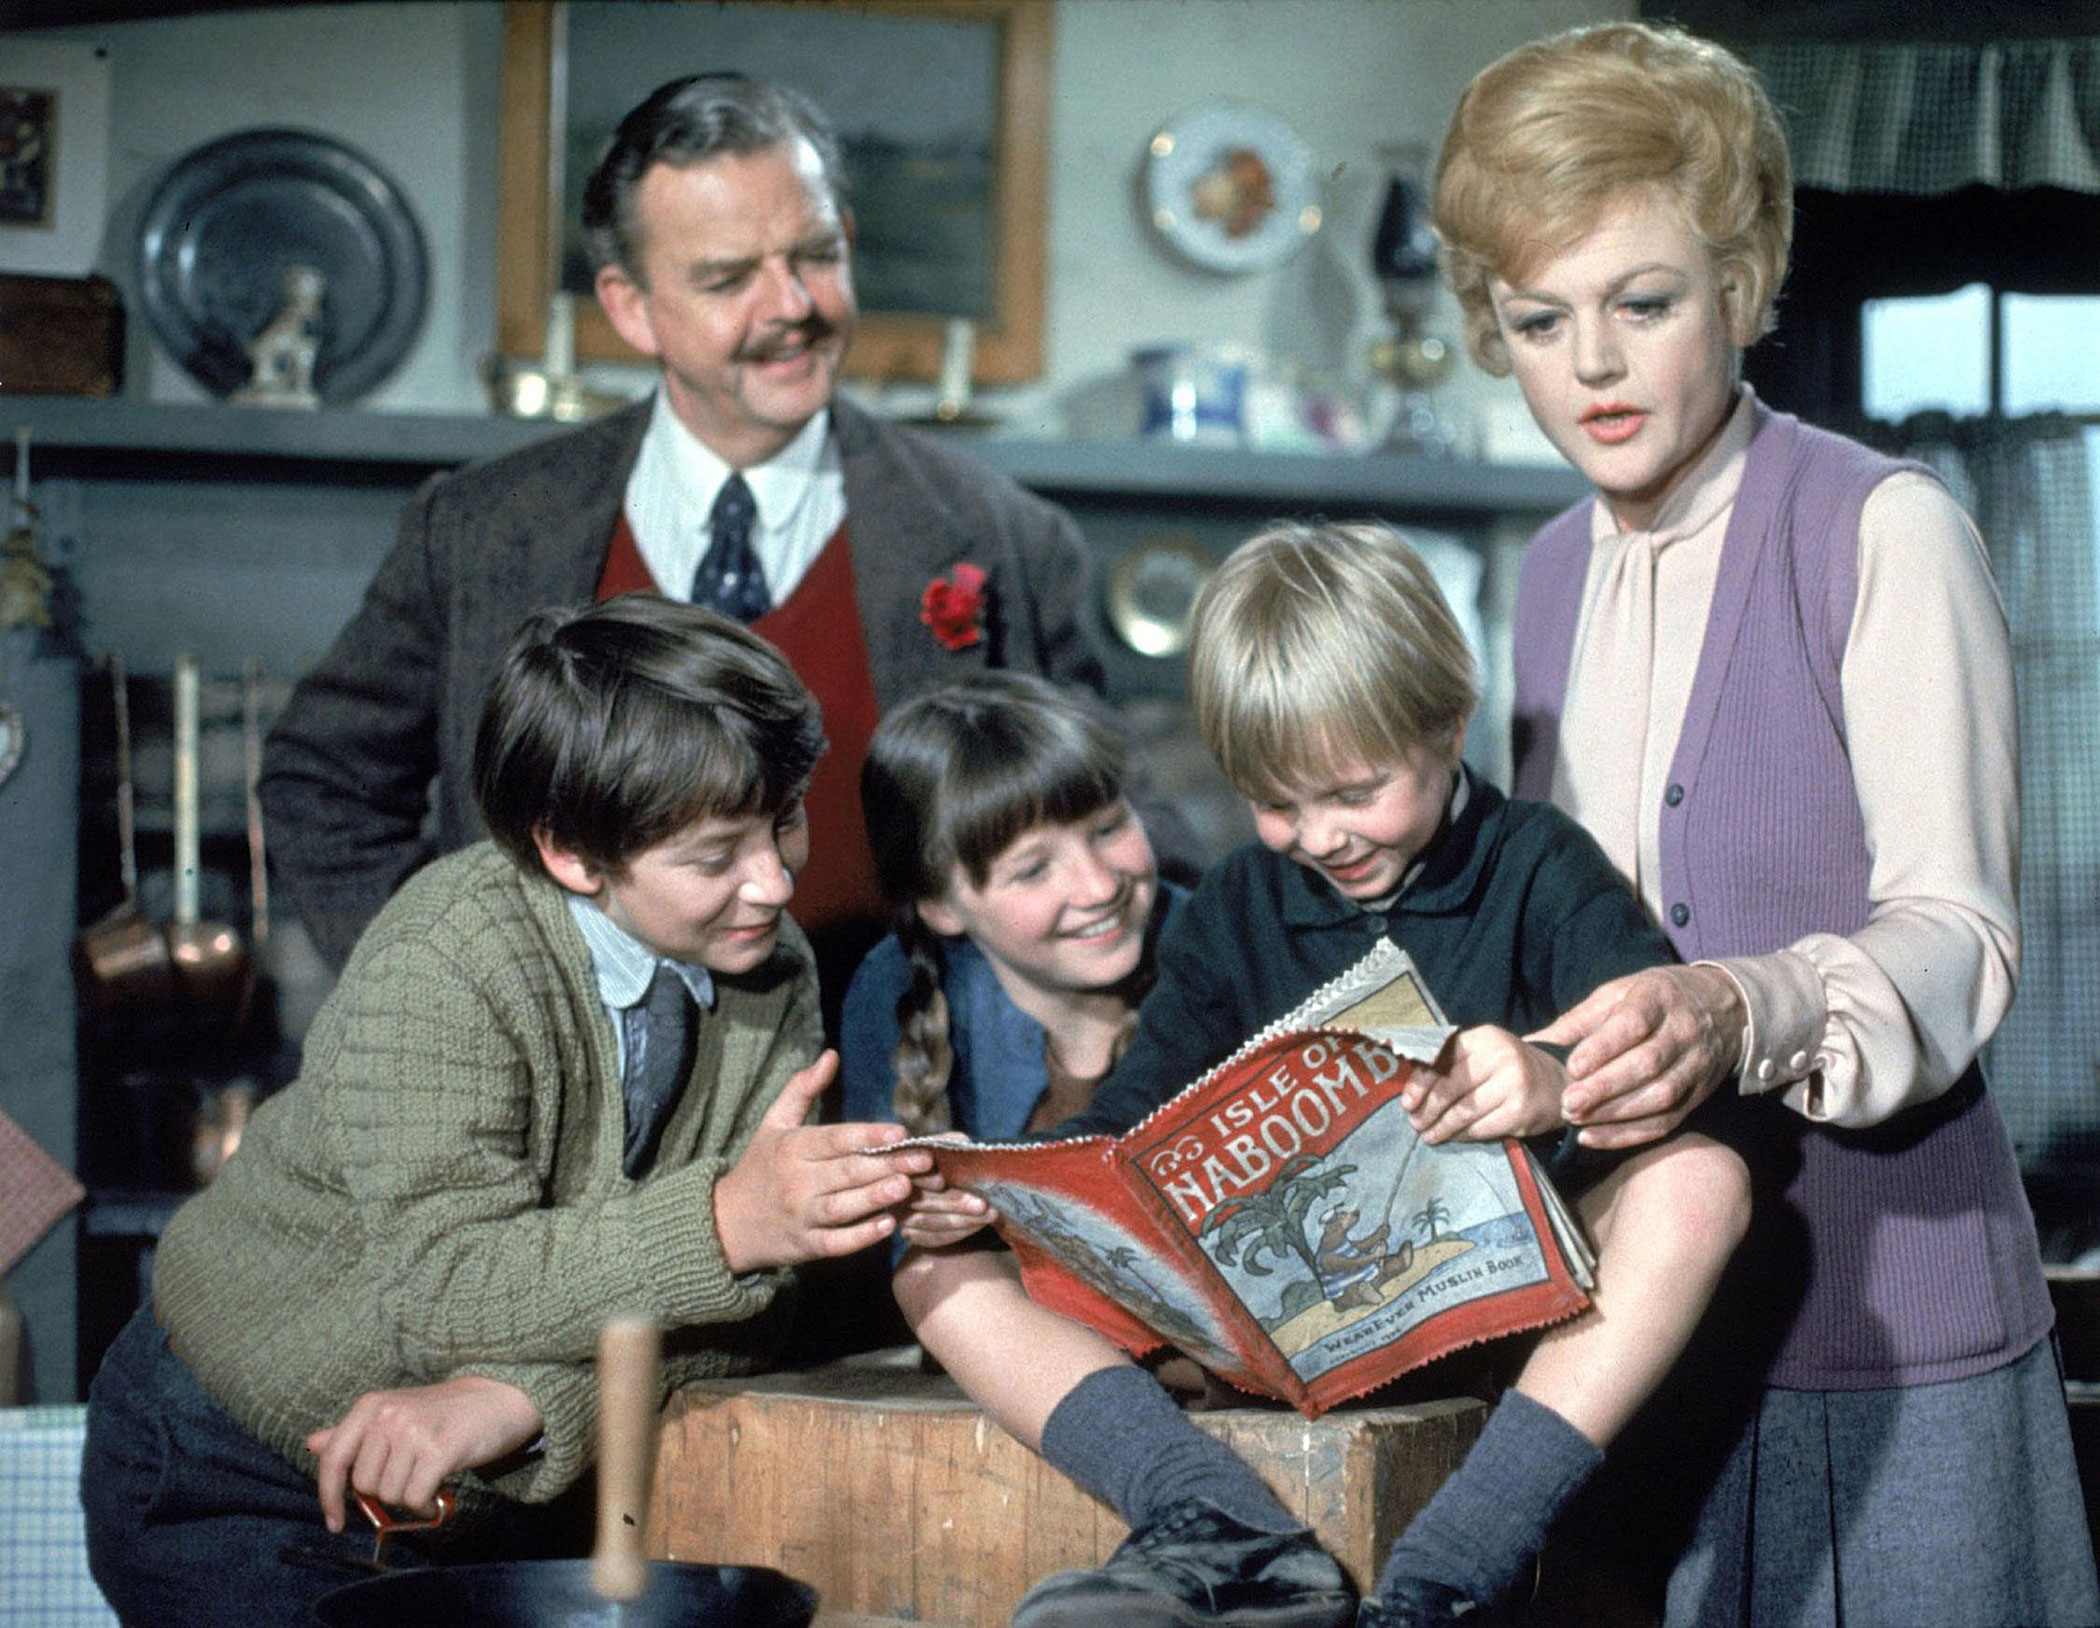 Bedknobs and Broomsticks, 1971